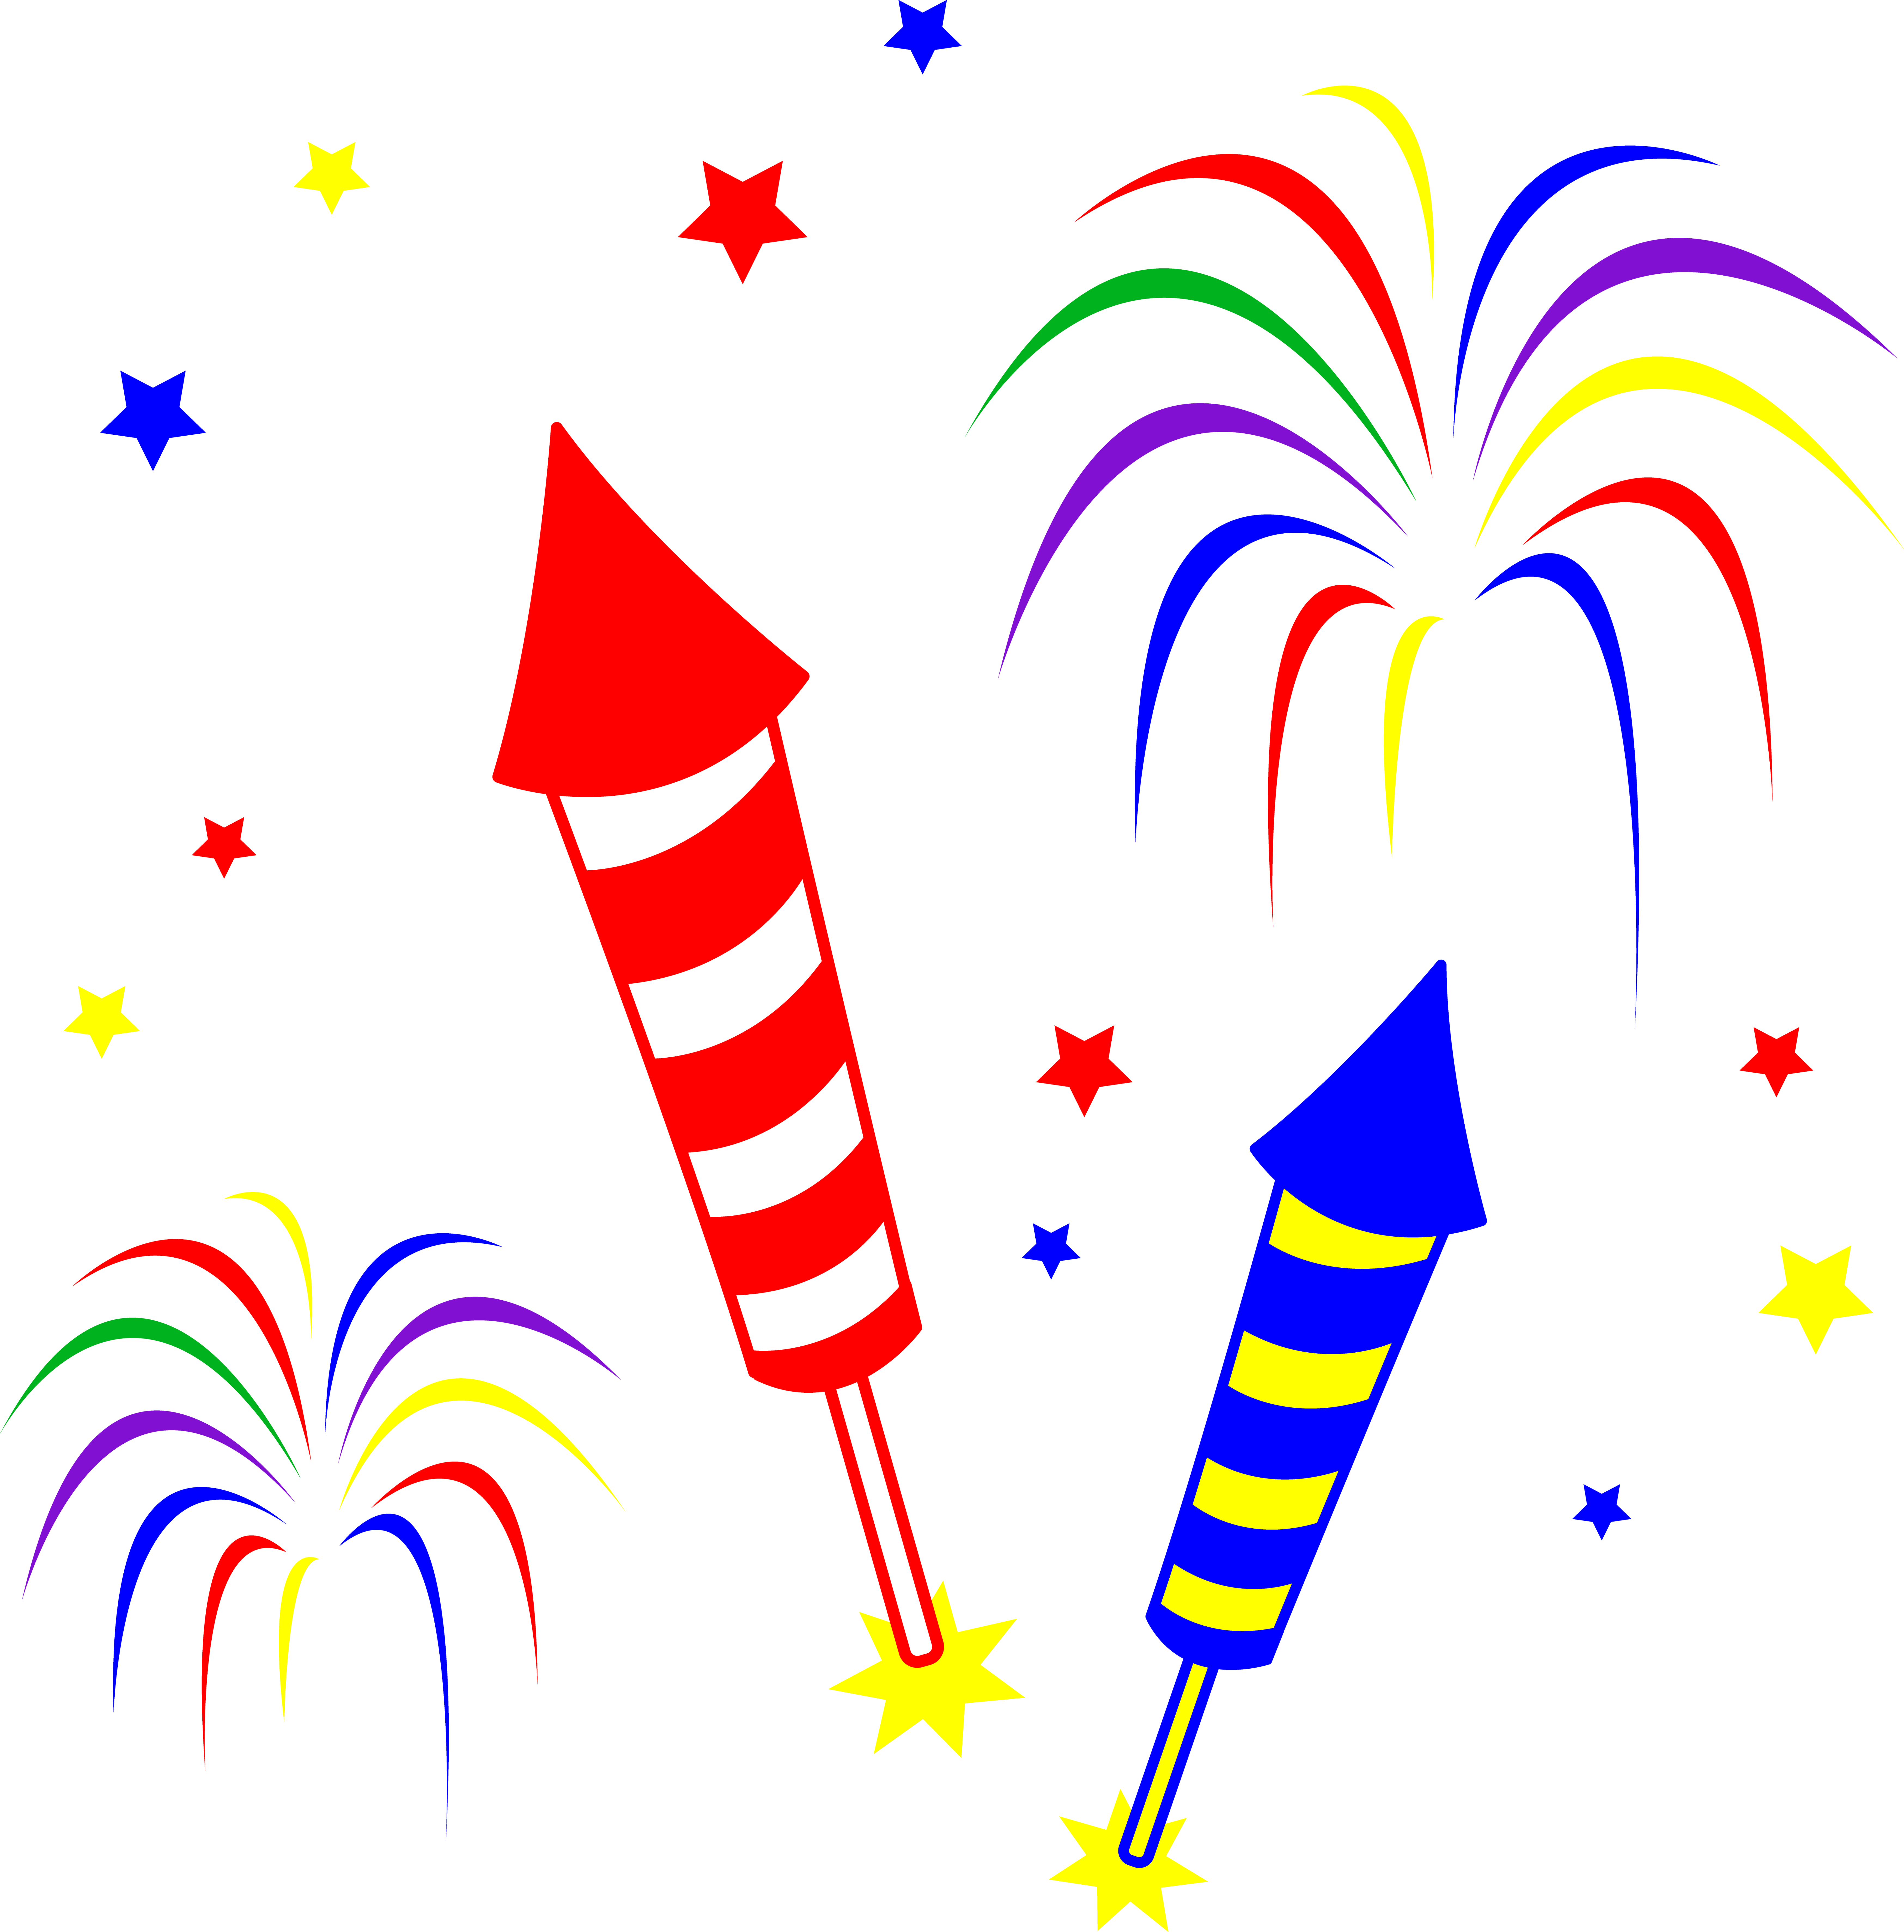 Rocket animated pencil and. Firecracker clipart sparkler